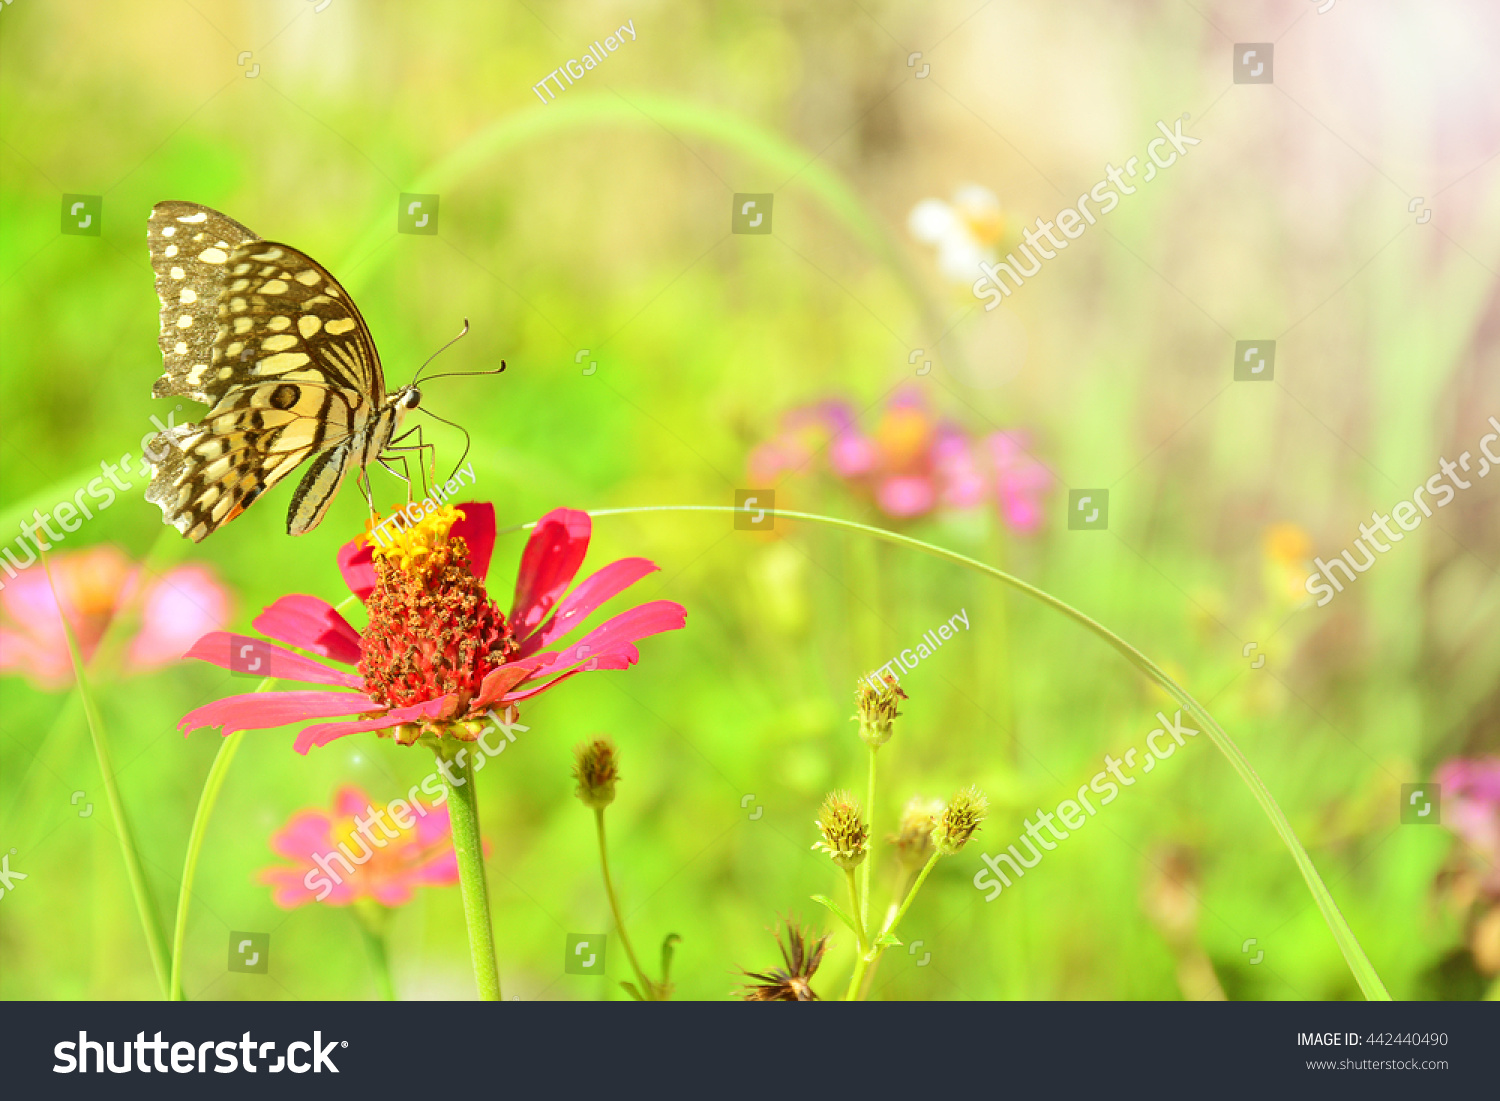 image of flowers and butterfly in the garden closeup | FinerWorks